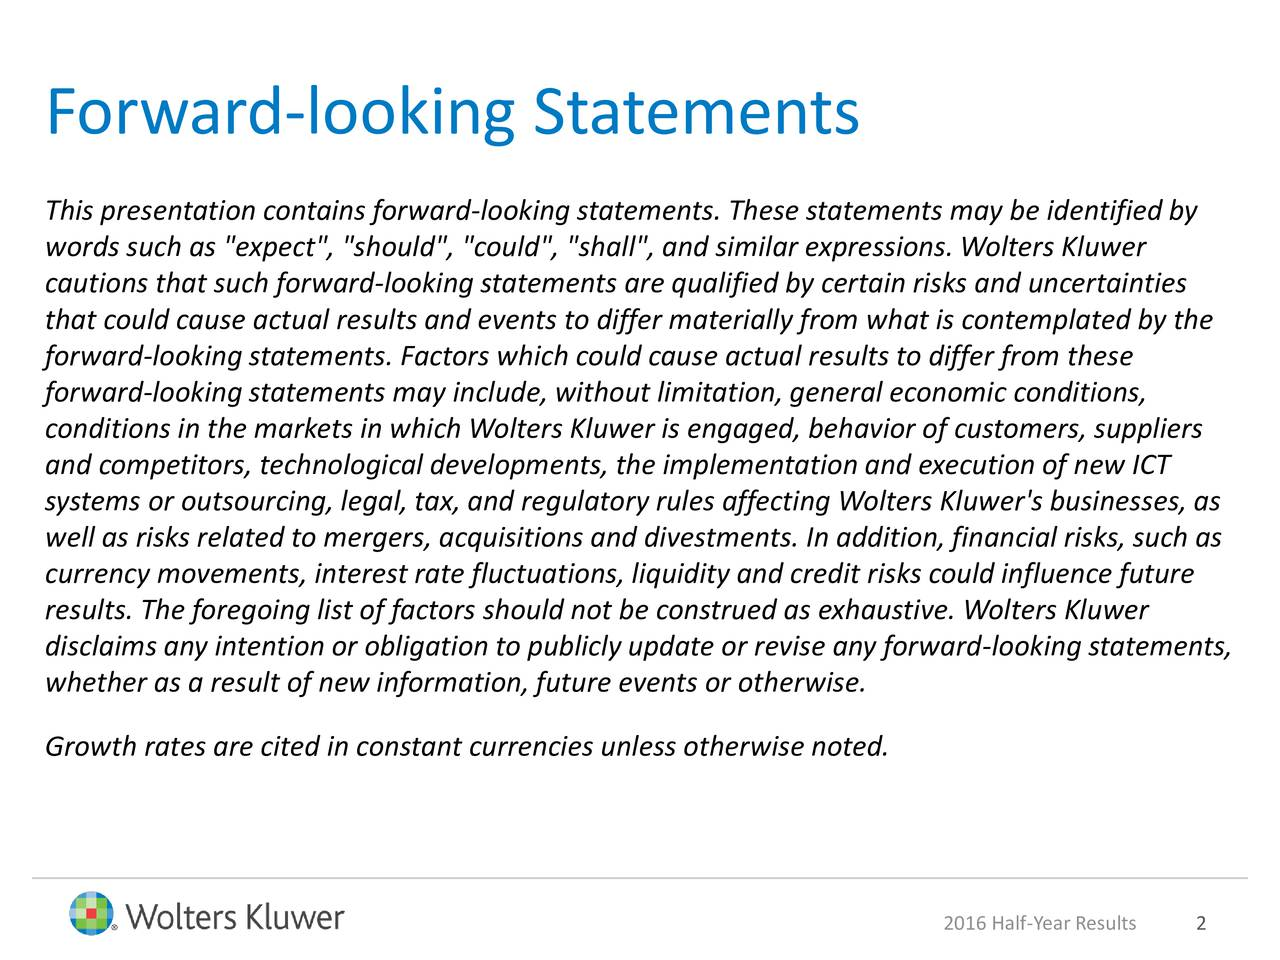 """This presentation contains forward-looking statements. These statements may be identified by words such as """"expect"""", """"should"""", """"could"""", """"shall"""", and similar expressions. Wolters Kluwer cautions that such forward-looking statements are qualified by certain risks and uncertainties that could cause actual results and events to differ materially from what is contemplated by the forward-looking statements. Factors which could cause actual results to differ from these forward-looking statements may include, without limitation, general economic conditions, conditions in the markets in which Wolters Kluwer is engaged, behavior of customers, suppliers and competitors, technological developments, the implementation and execution of new ICT systems or outsourcing, legal, tax, and regulatory rules affecting Wolters Kluwer's businesses, as well as risks related to mergers, acquisitions and divestments. In addition, financial risks, such as currency movements, interest rate fluctuations, liquidity and credit risks could influence future results. The foregoing list of factors should not be construed as exhaustive. Wolters Kluwer disclaims any intention or obligation to publicly update or revise any forward-looking statements, whether as a result of new information, future events or otherwise. Growth rates are cited in constant currencies unless otherwise noted. 2016 Half-Year Result2"""